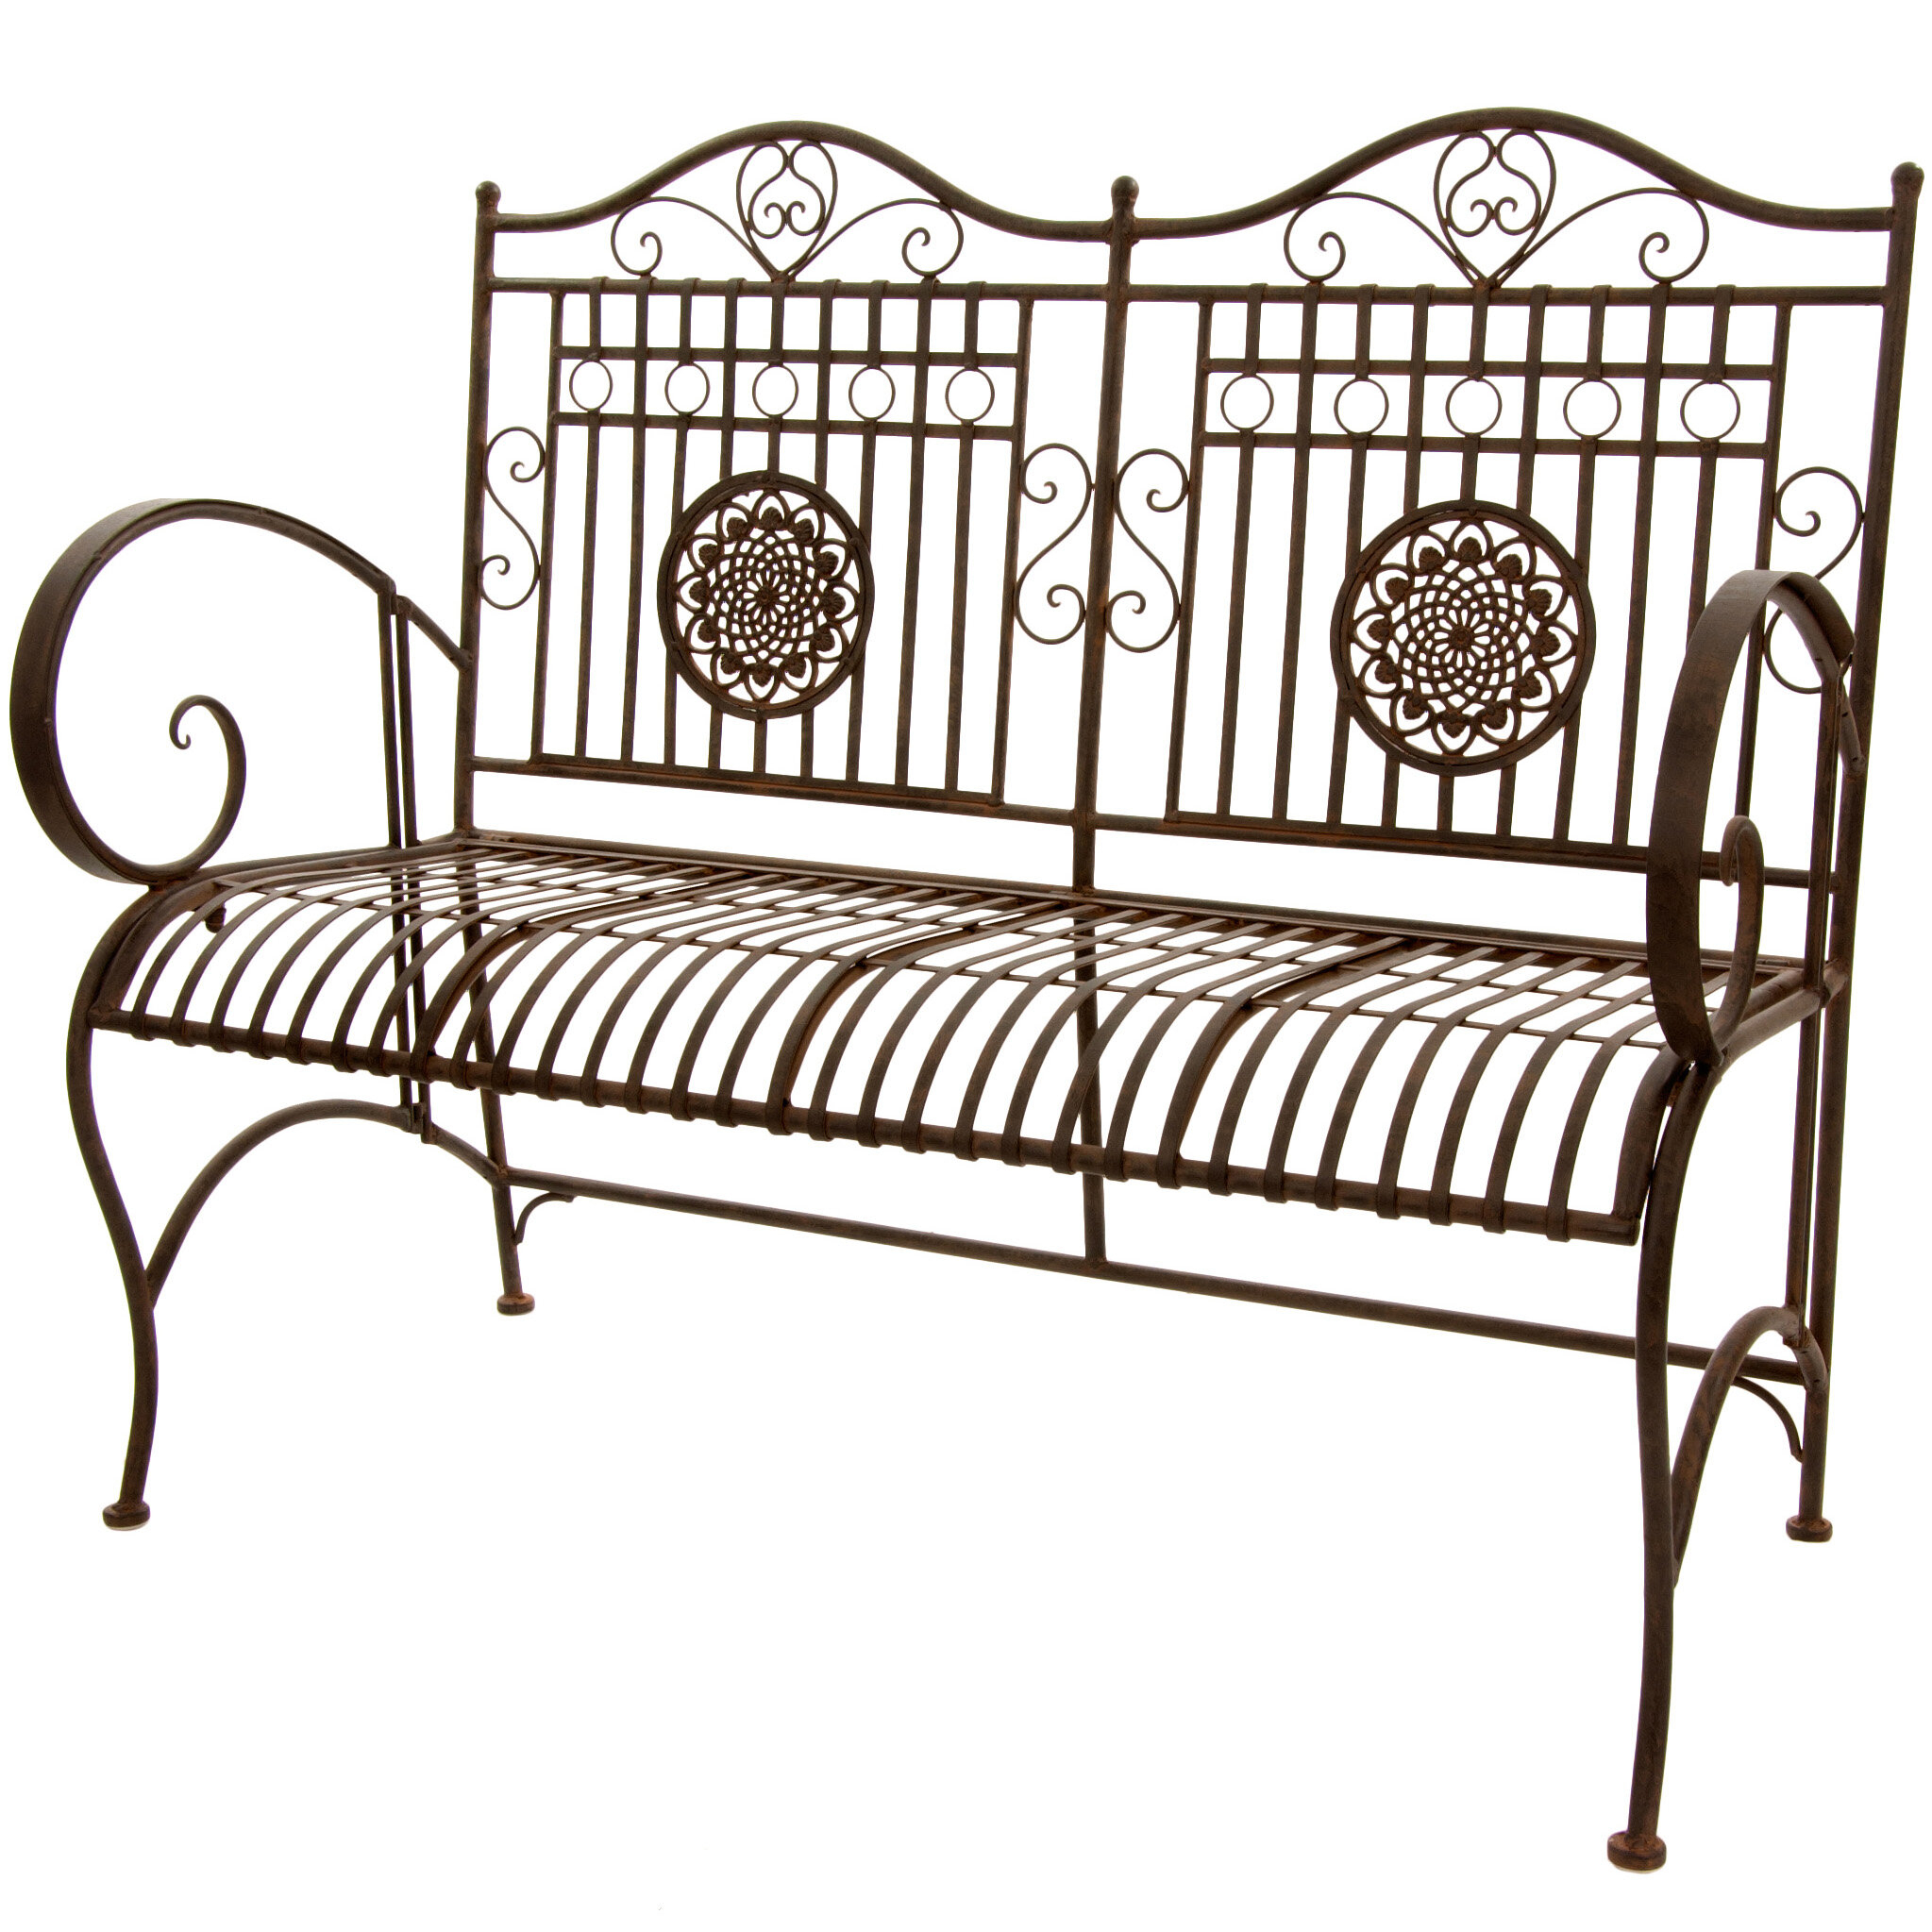 Bodner Rustic Metal Garden Bench With Regard To Strasburg Blossoming Decorative Iron Garden Benches (View 8 of 25)